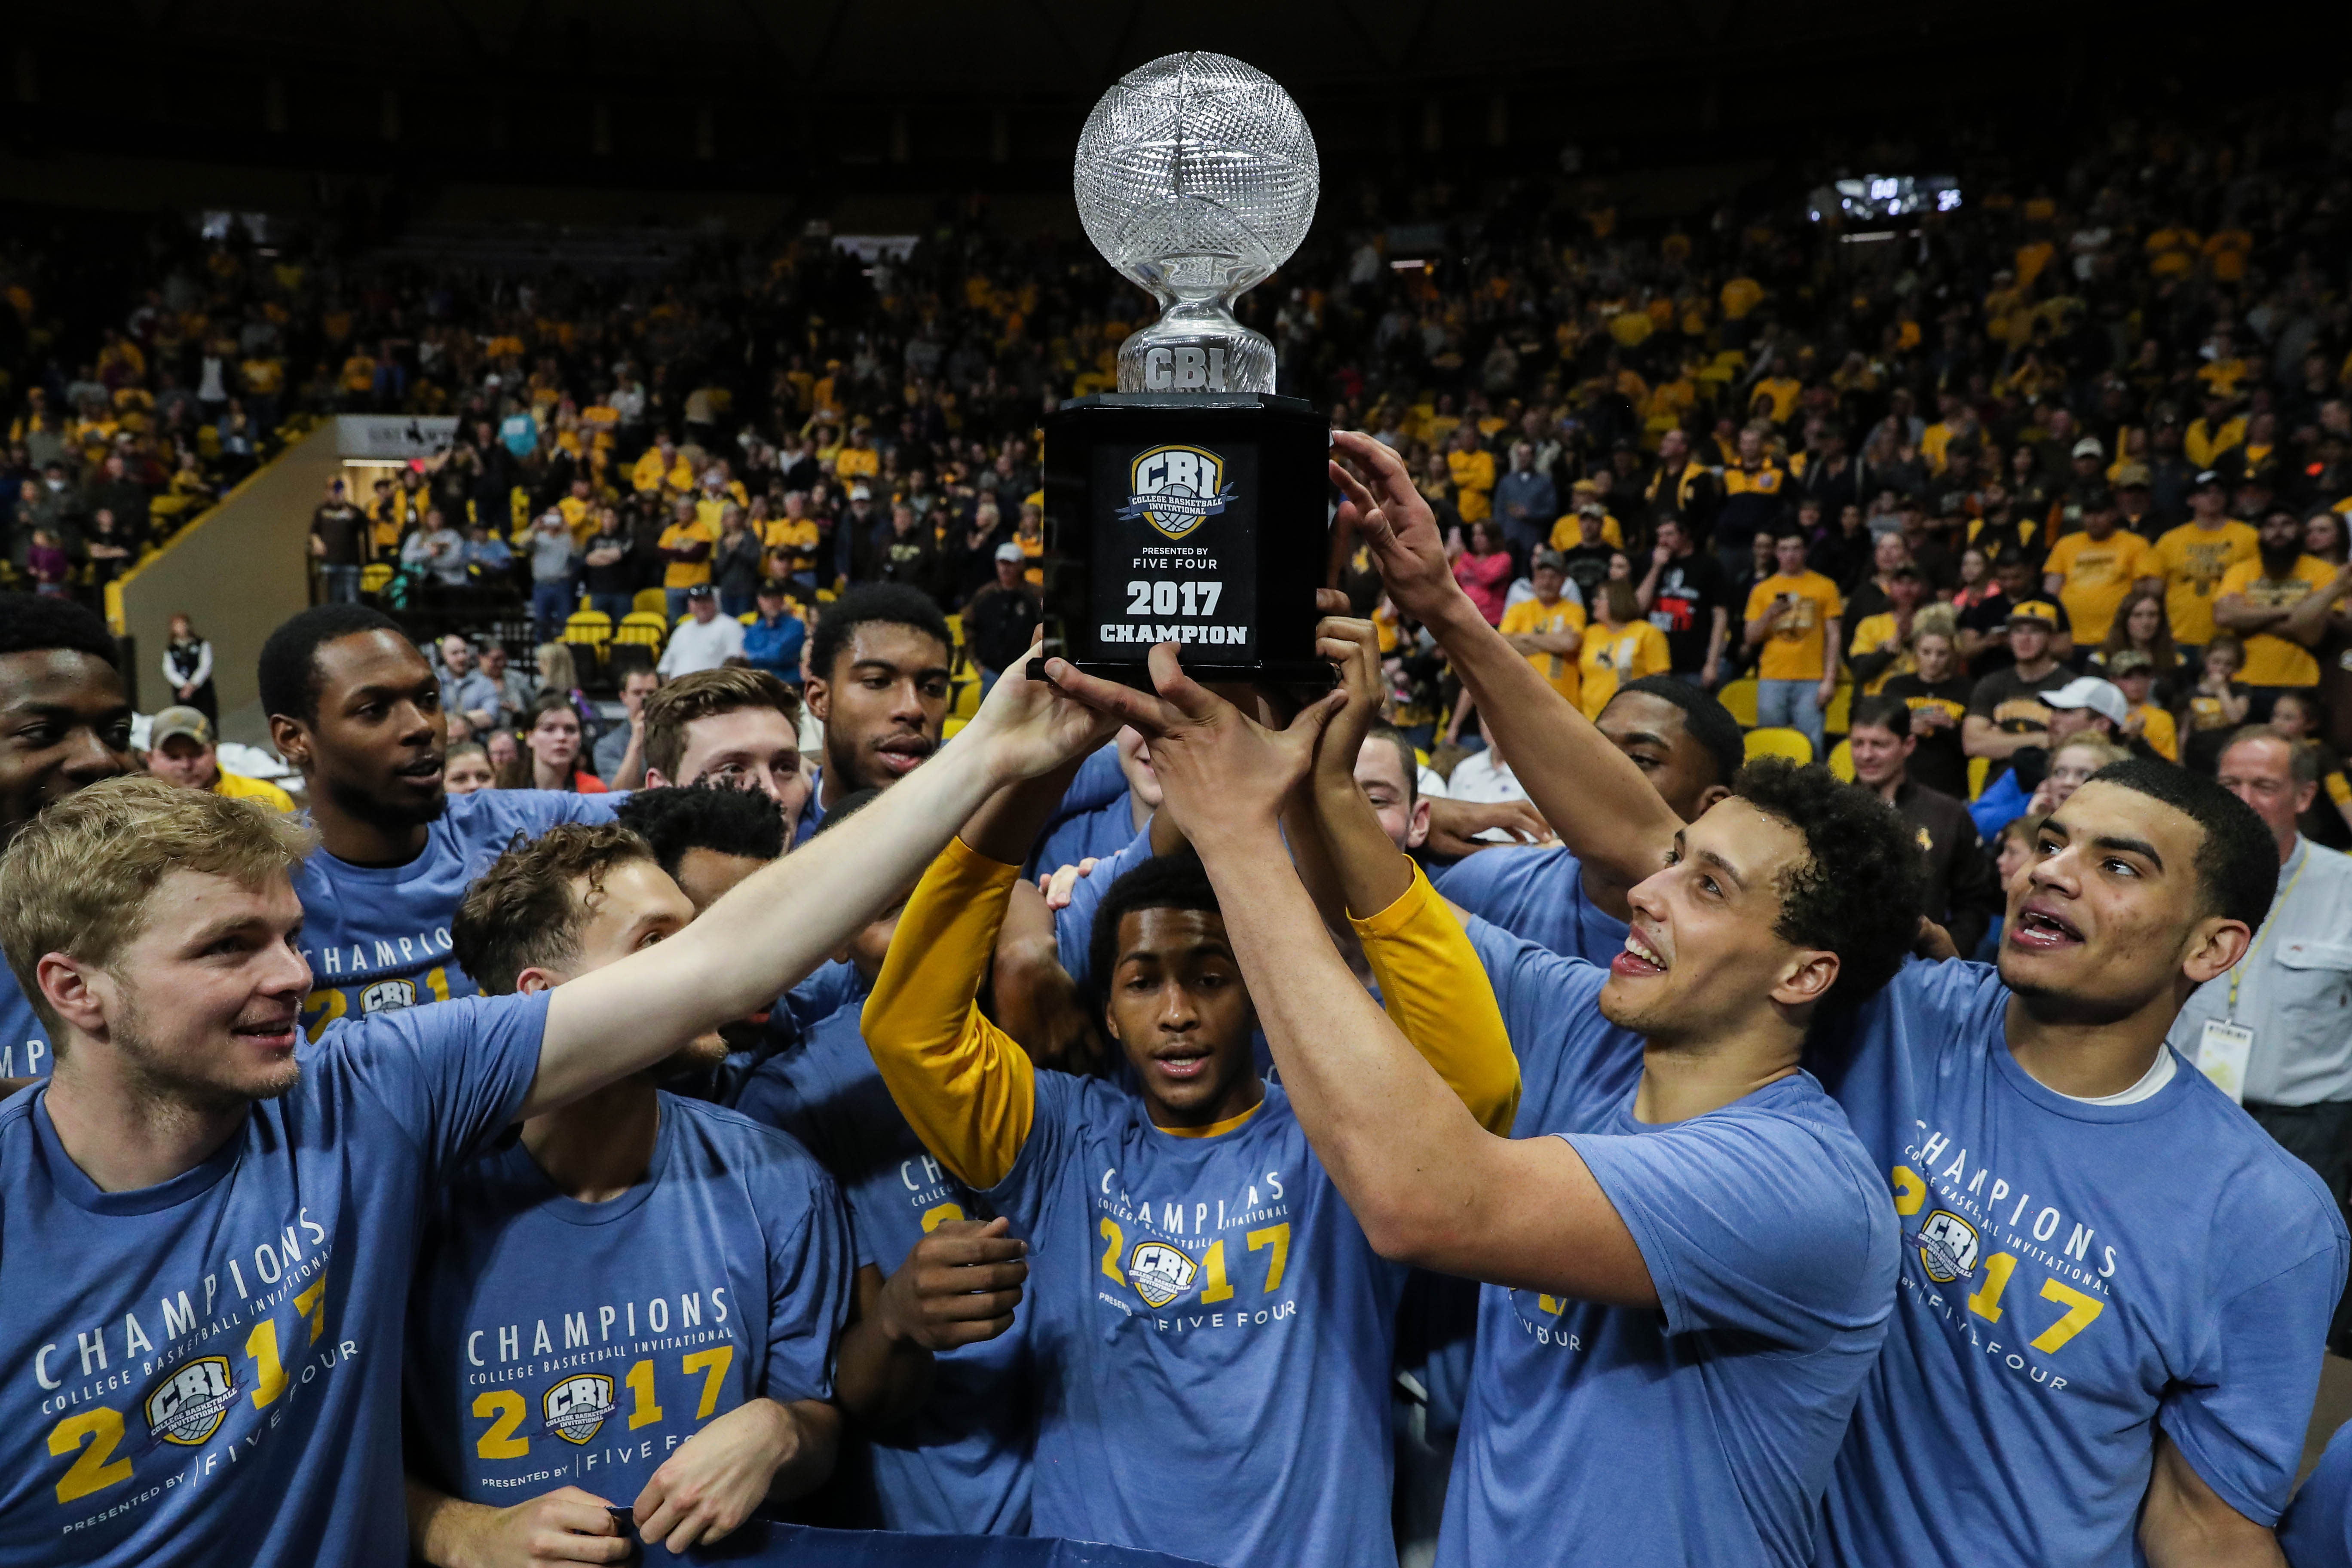 Wyoming Captures CBI Presented by Five Four Championship - College ...